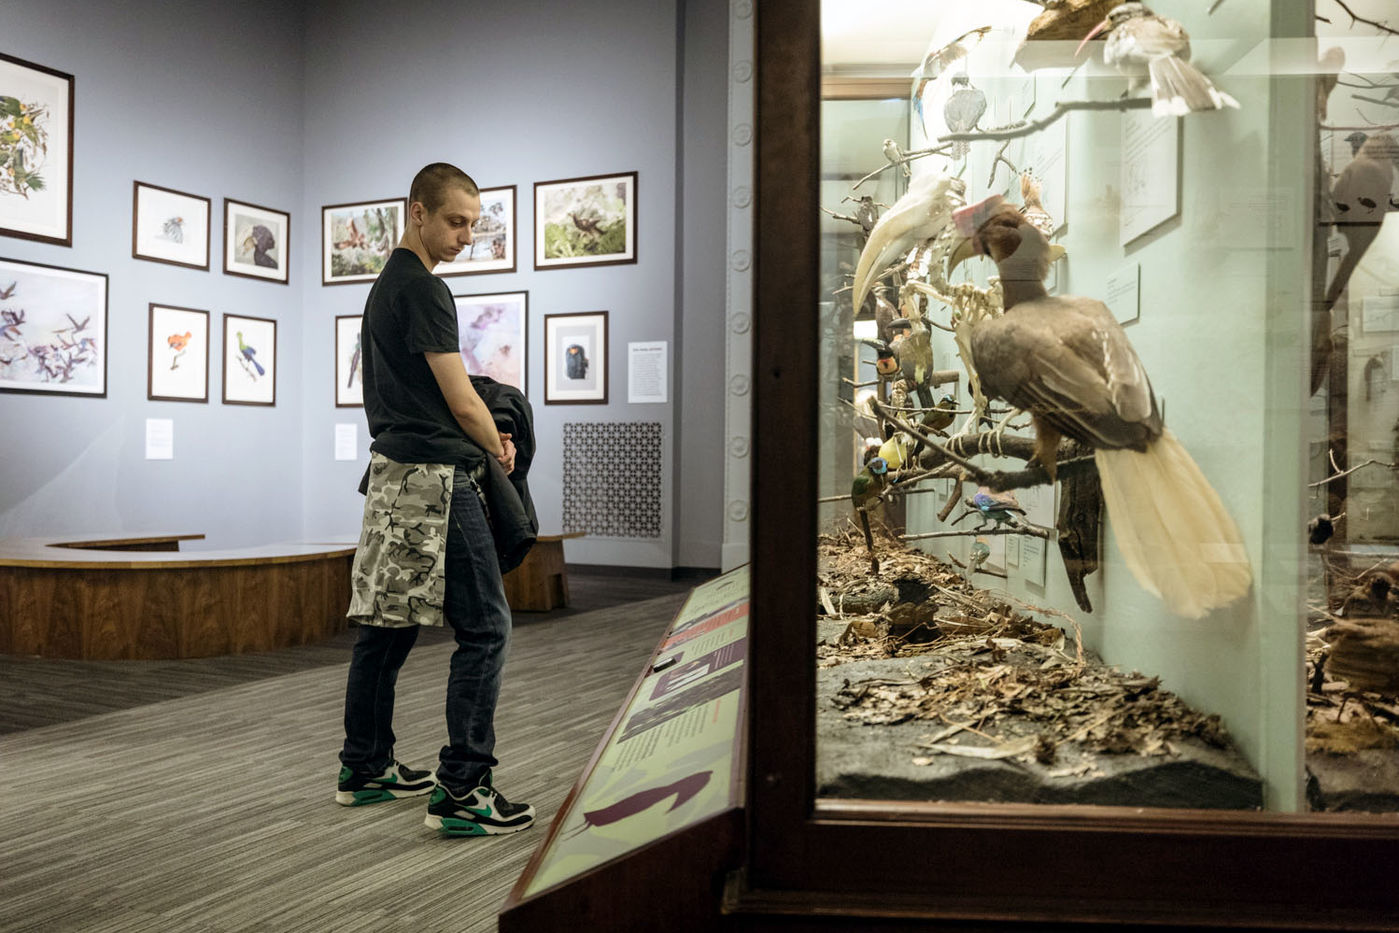 A young man studies the label on a display case filled with birds. Behind him are artists' depictions of birds from around the world.